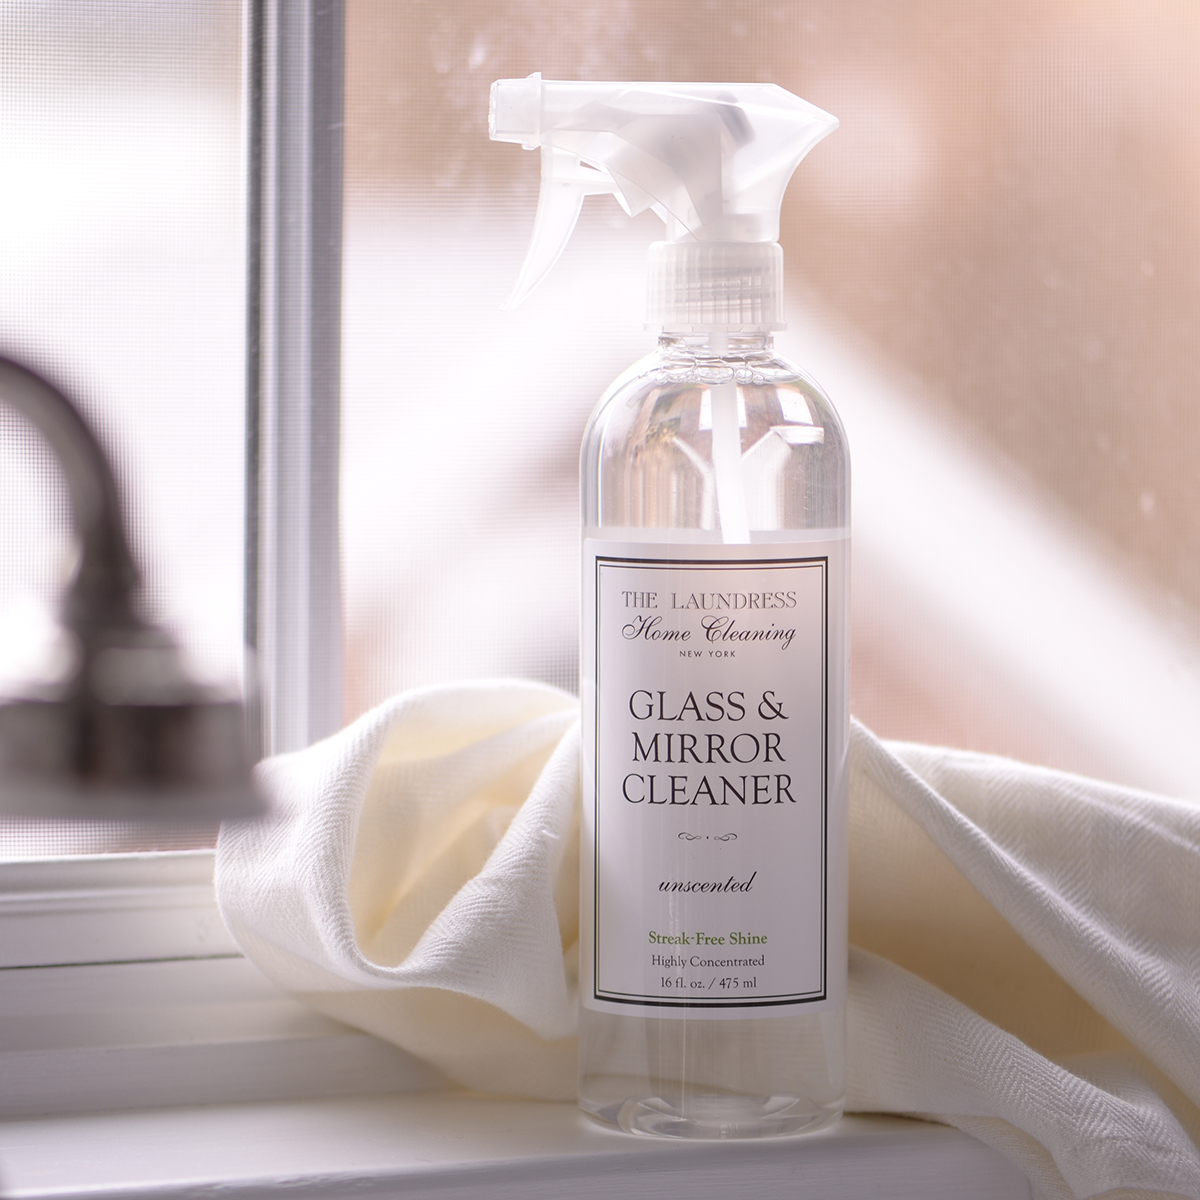 The Laundress 16 oz. Glass & Mirror Cleaner